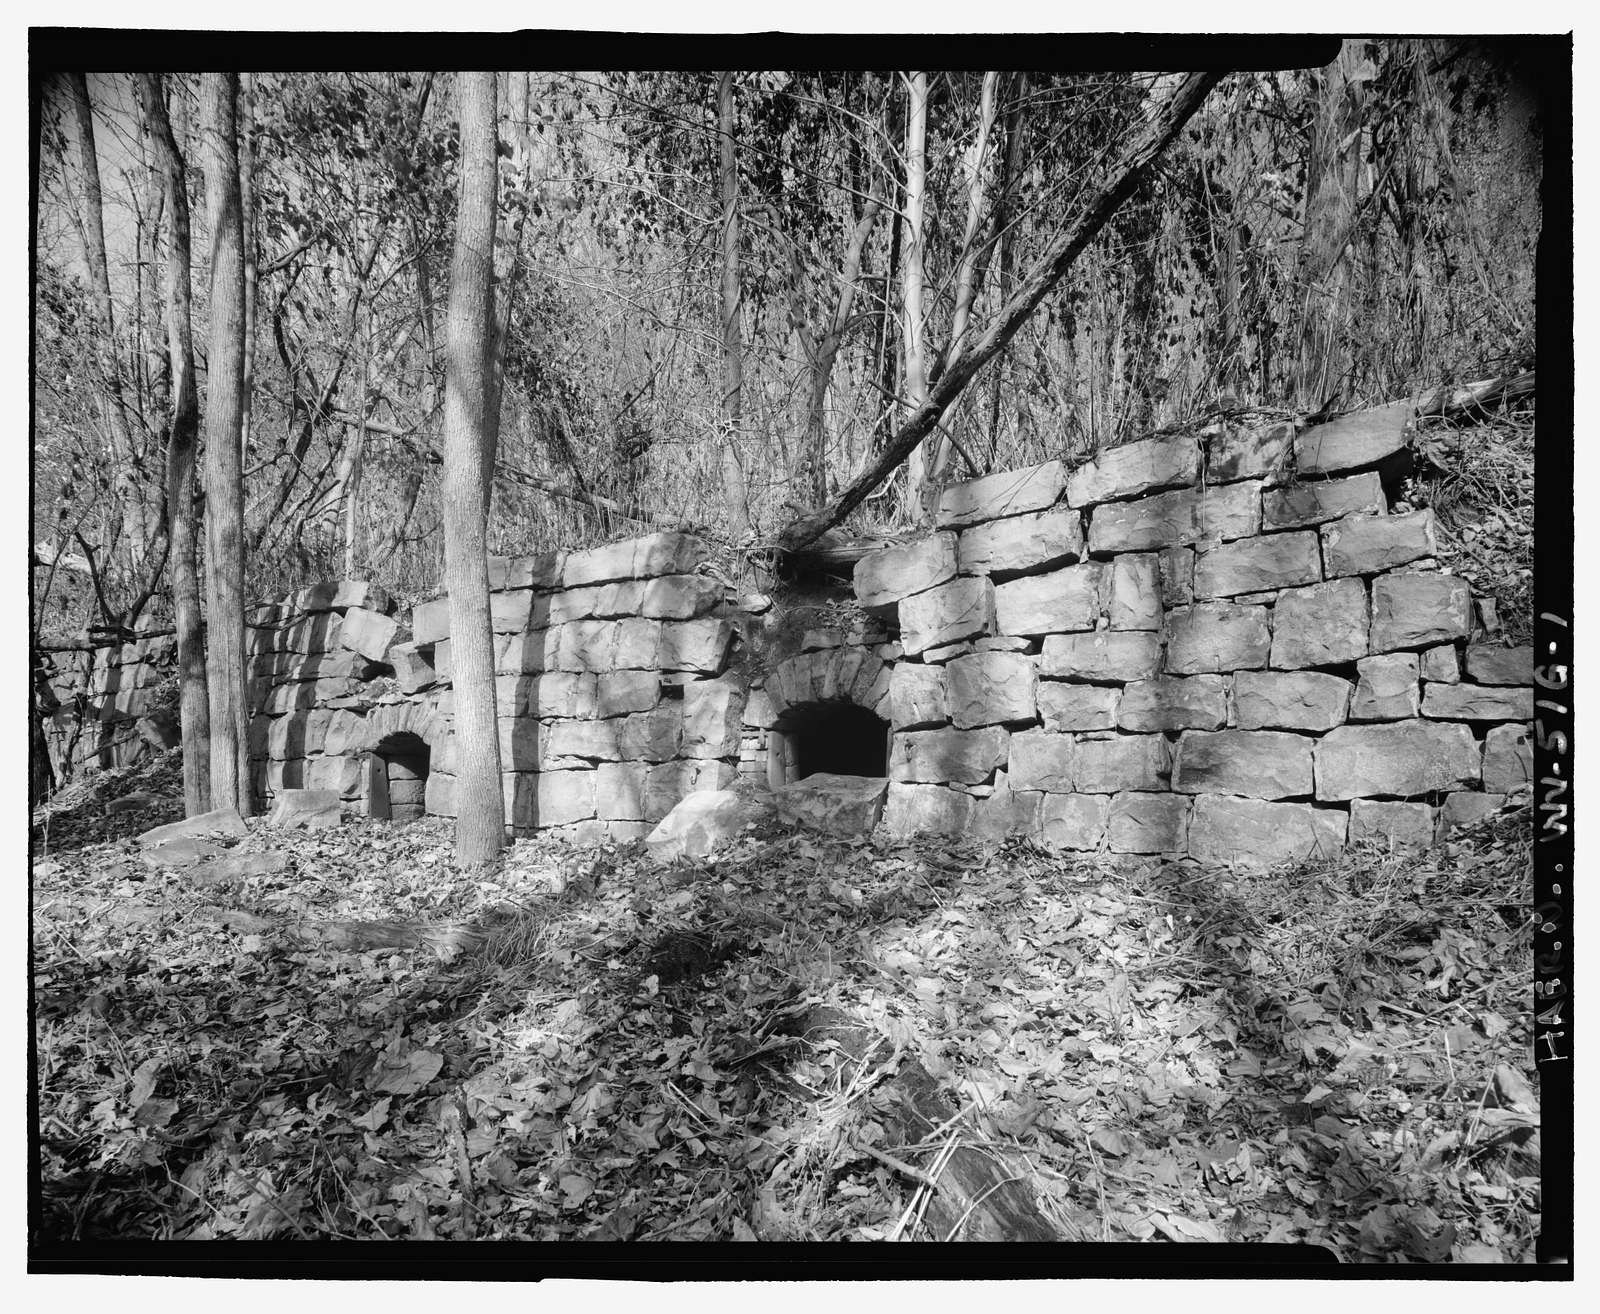 Nuttallburg Mine Complex, Coke Ovens, North side of New River, 2.7 miles upstream from Fayette Landing, Lookout, Fayette County, WV